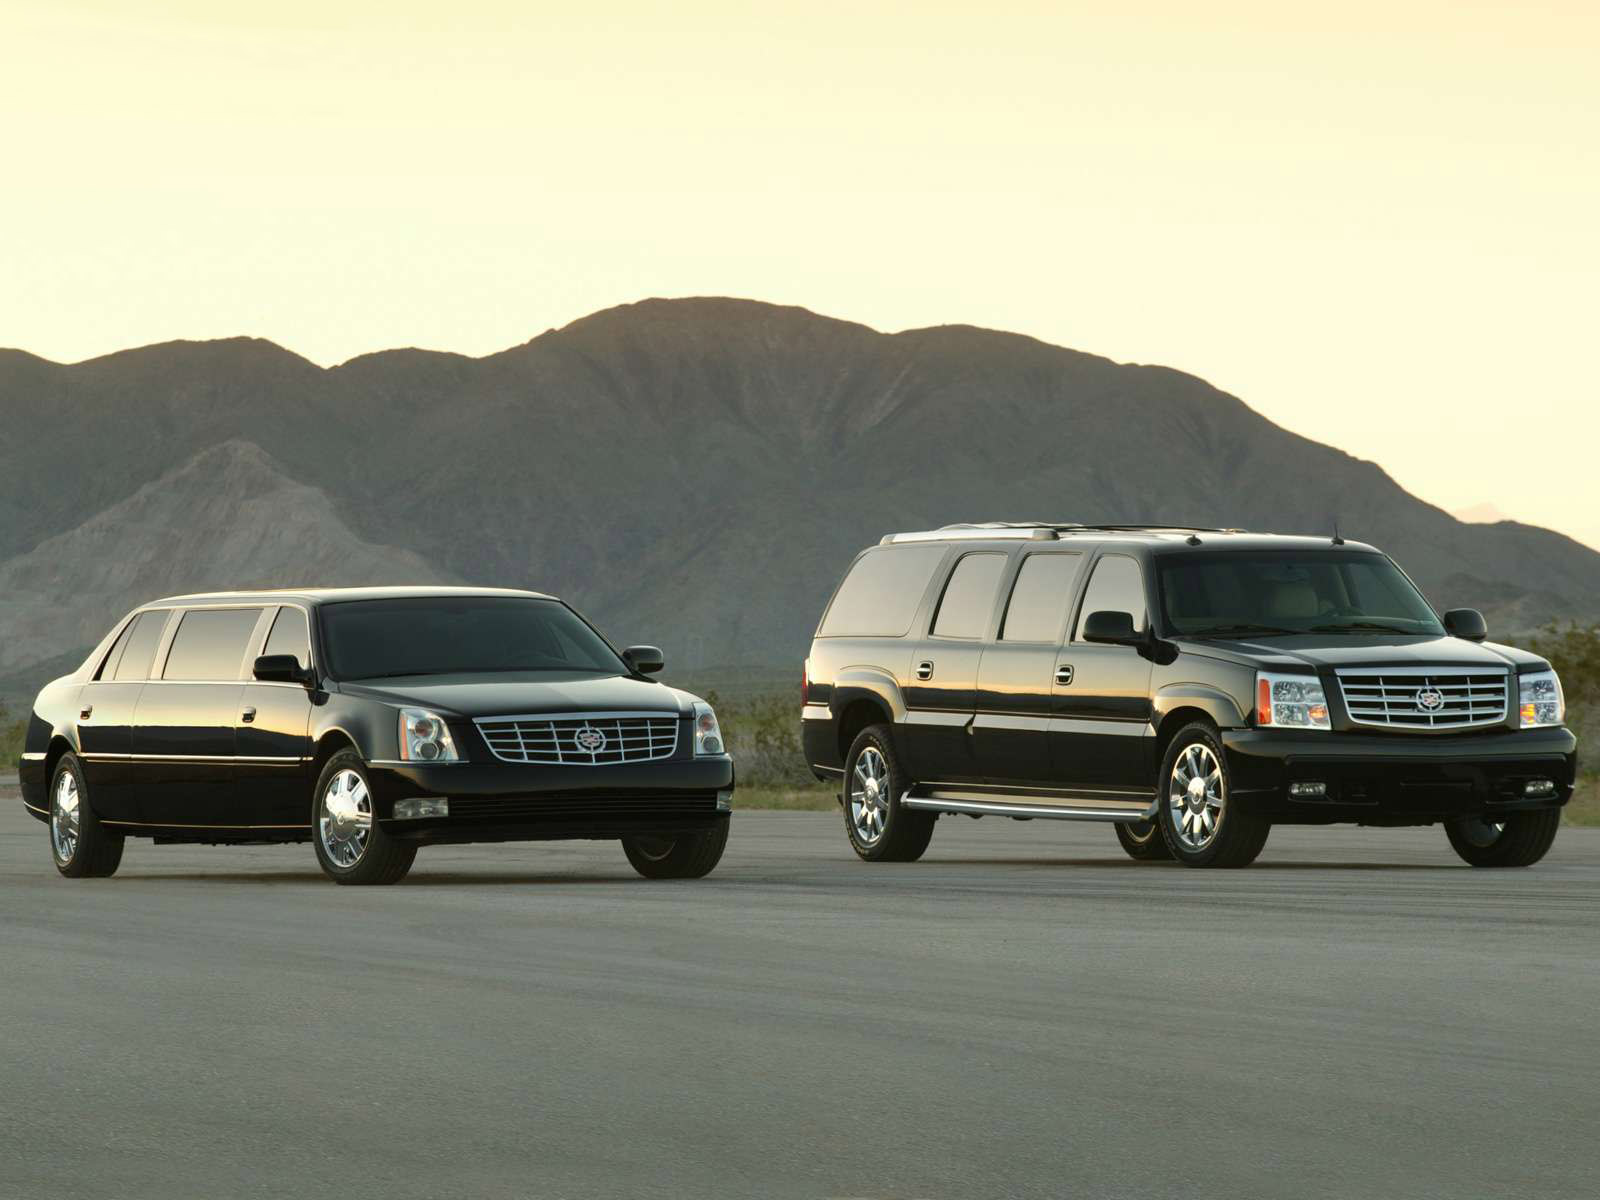 My Ford Benefits >> COOL IMAGES: Limousine Car Wallpapers